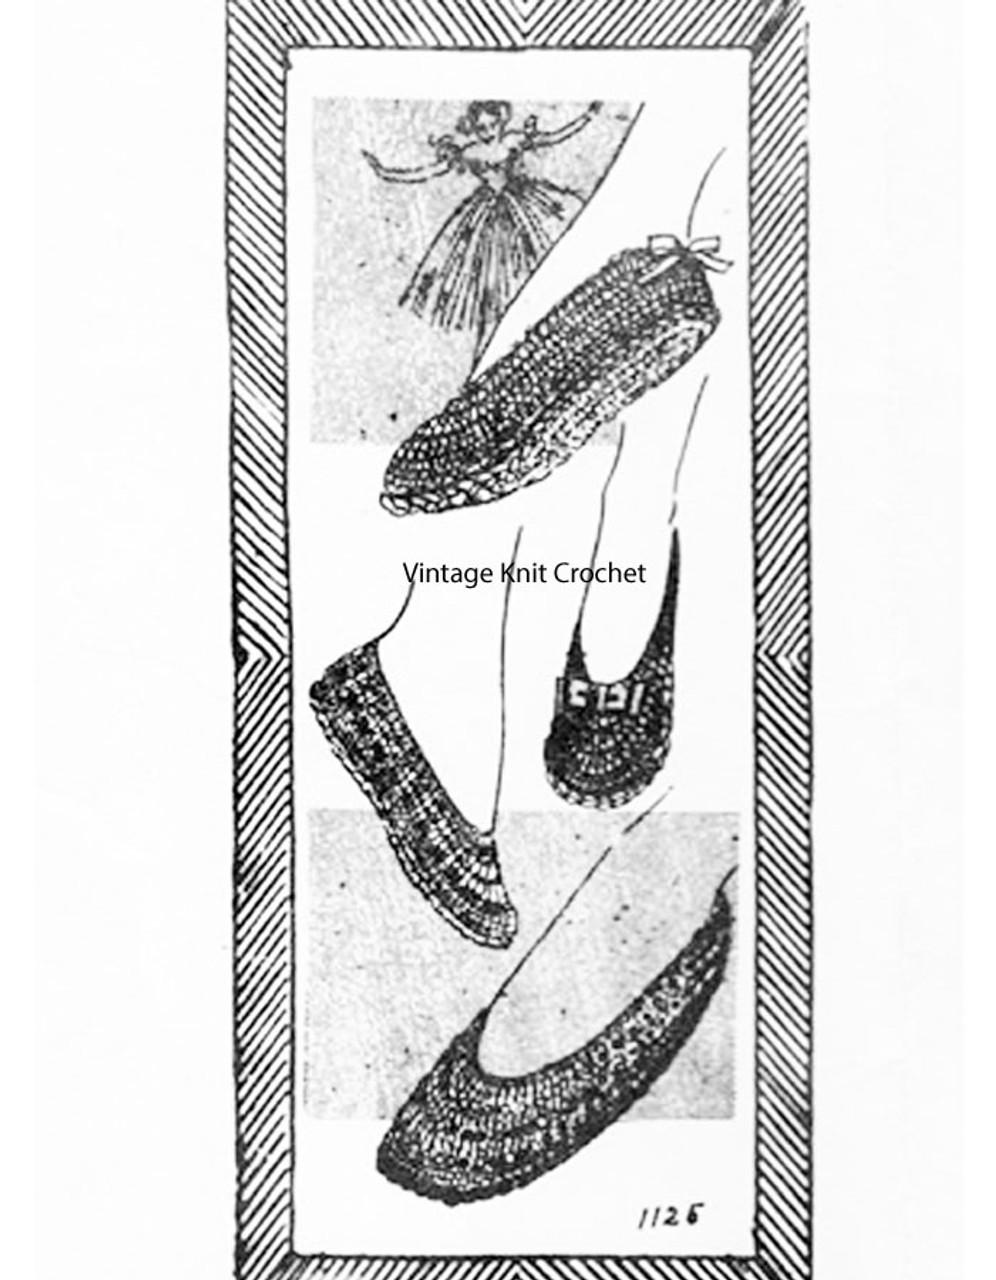 Vintage Crocheted Slippers Pattern No. 1125